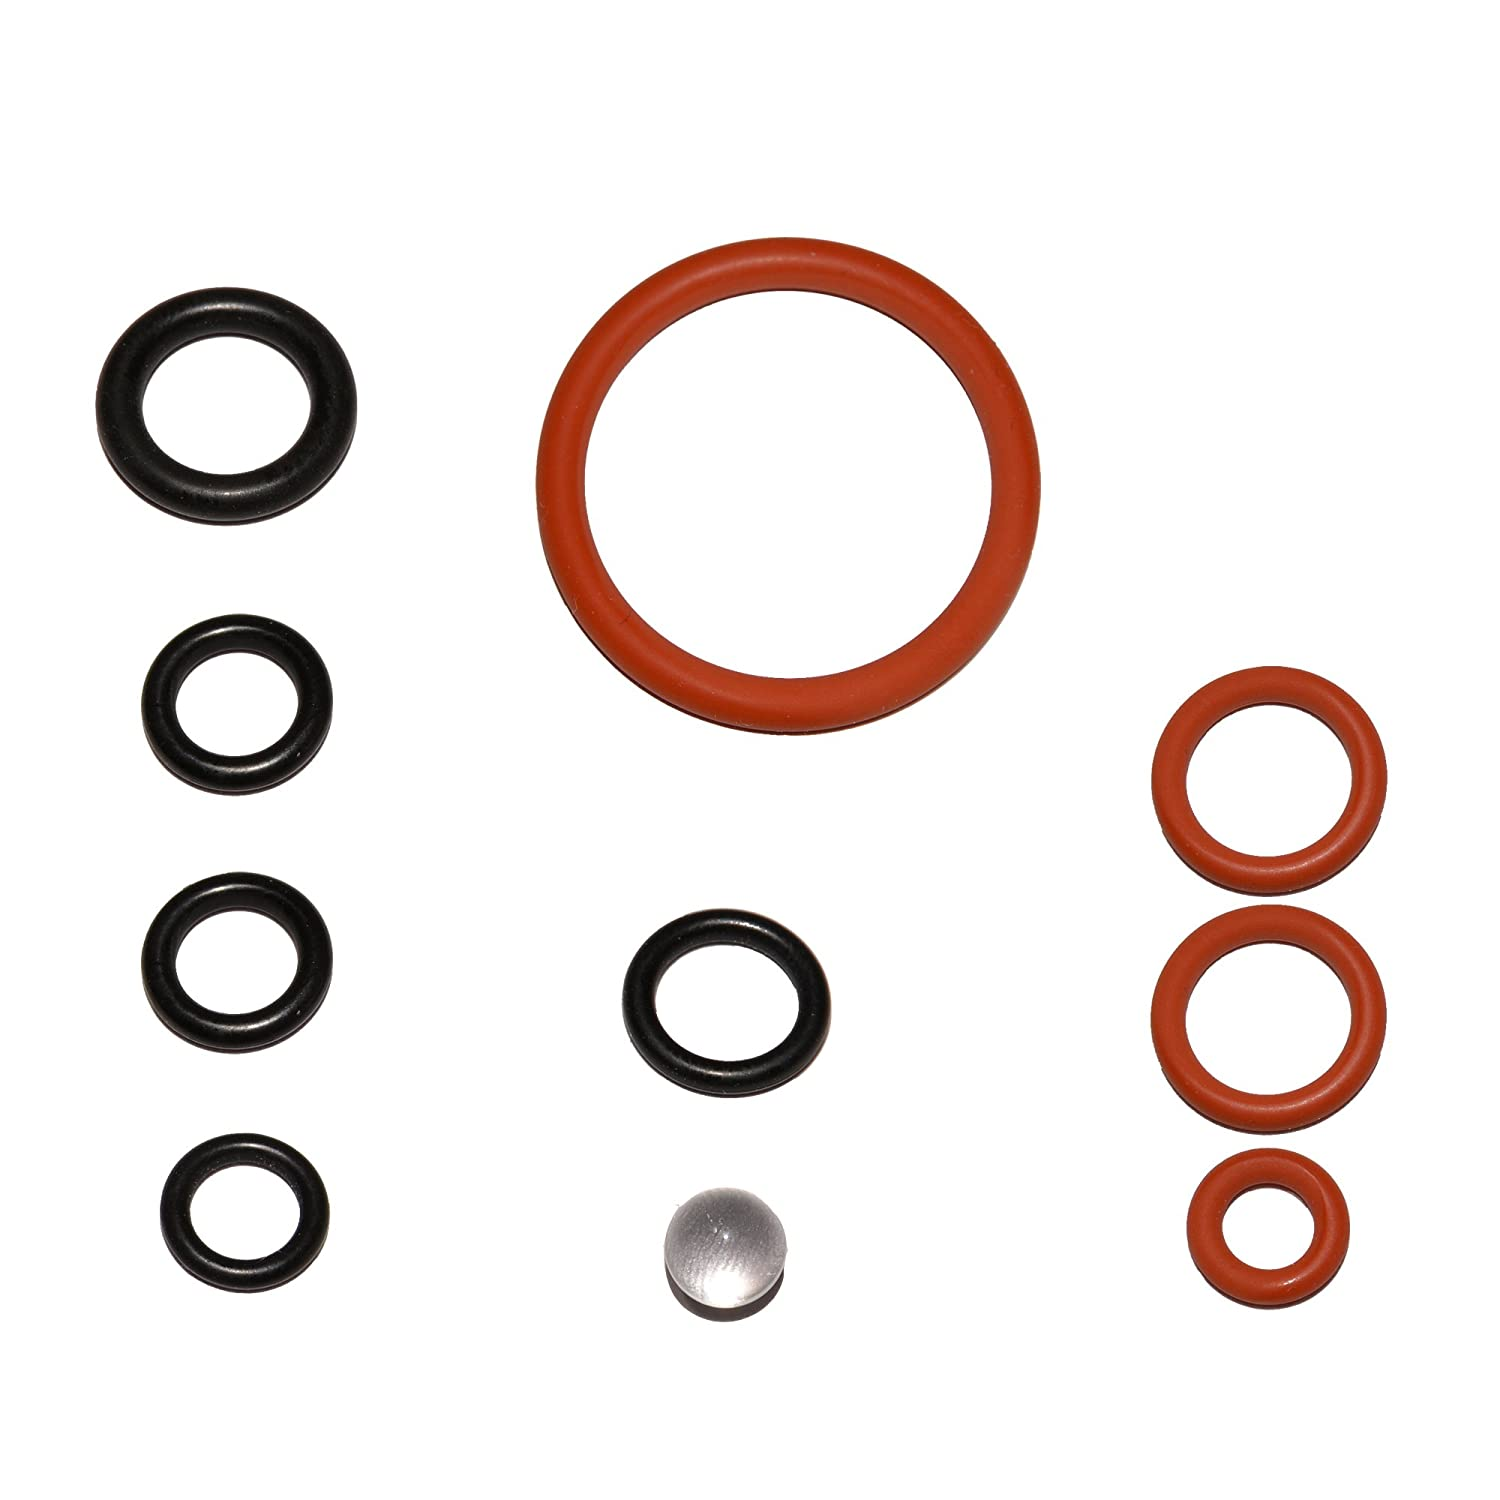 Saeco Spidem Miele Gaggia Krups Solis Bosch Siemens Gasket Set O-Ring Seal for Brewing Units + Support Valve Set/1 Snapworld-Kaffee